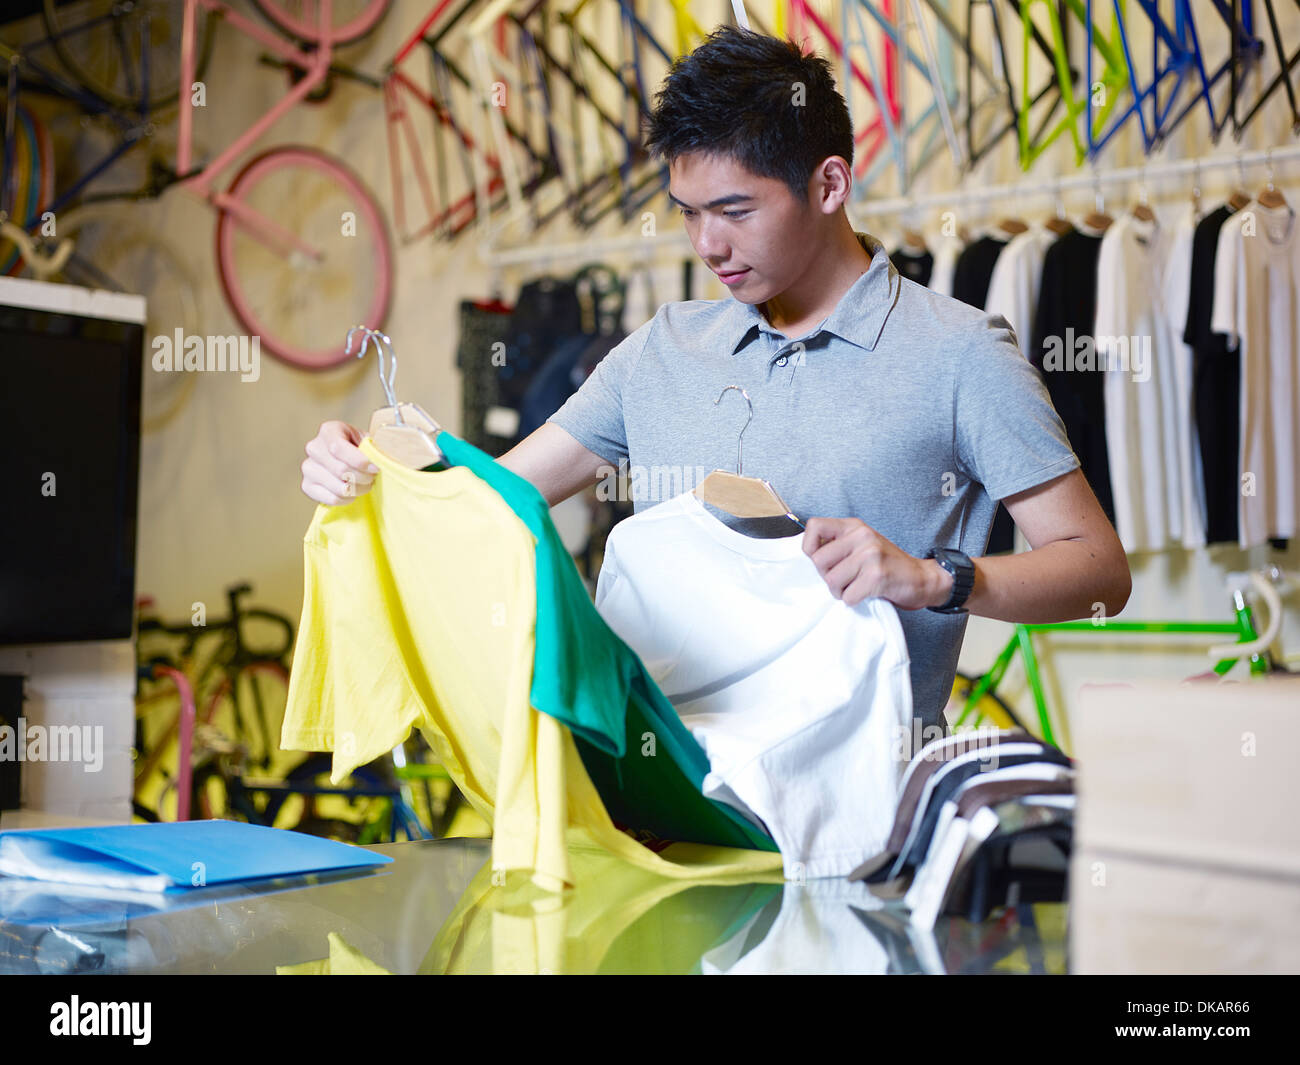 Young man holding t shirts in bike shop - Stock Image